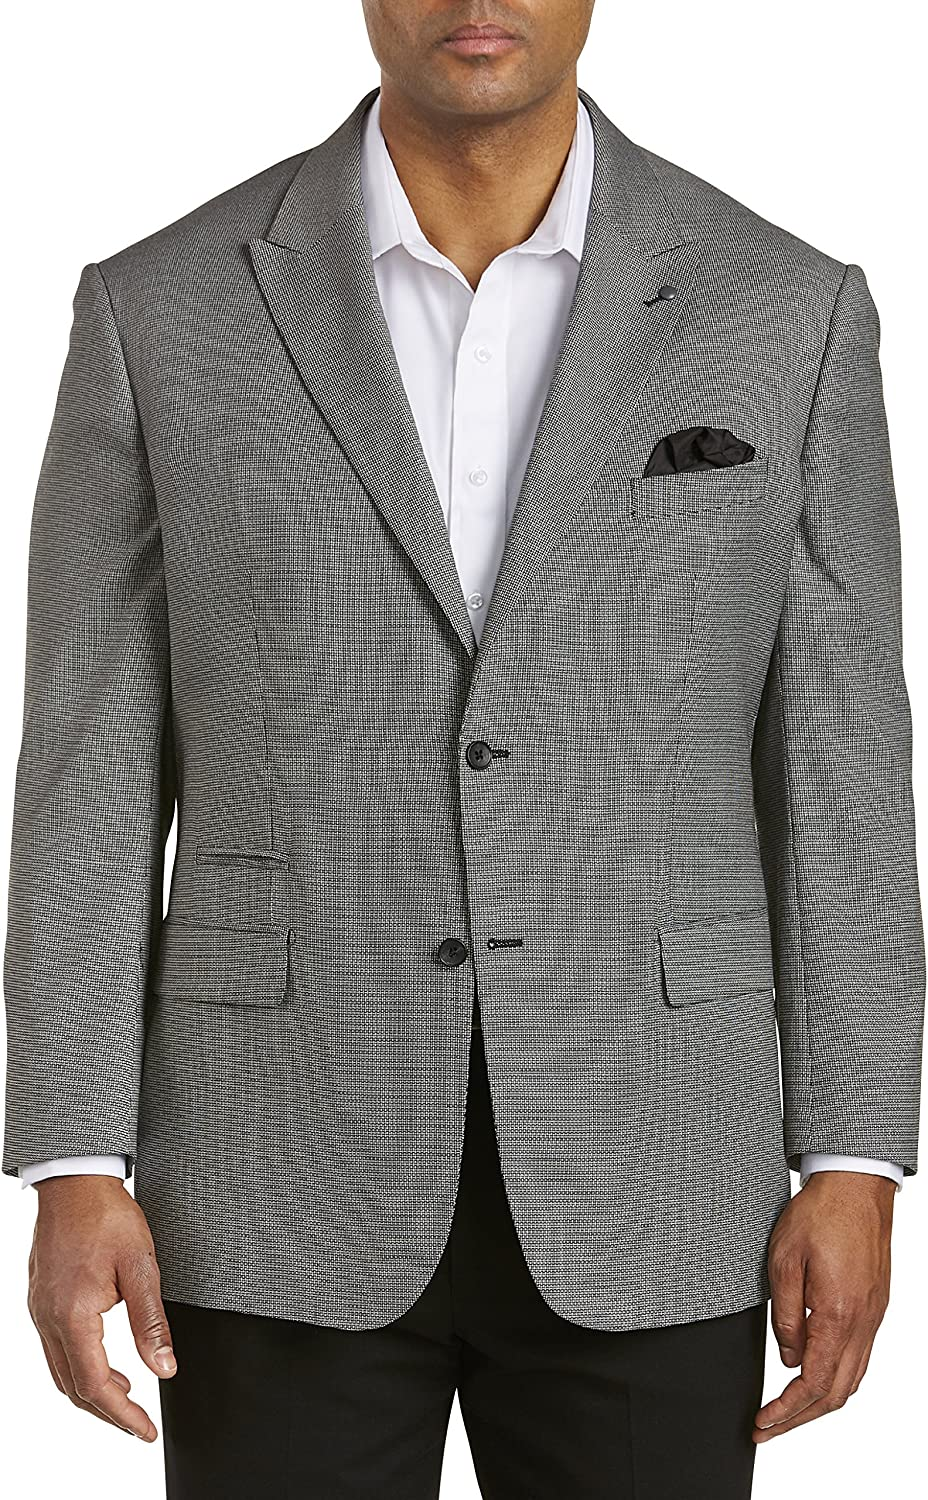 Synrgy by DXL Big and Tall Jacket-Relaxer Performance Bone-Weave Sport Coat Black